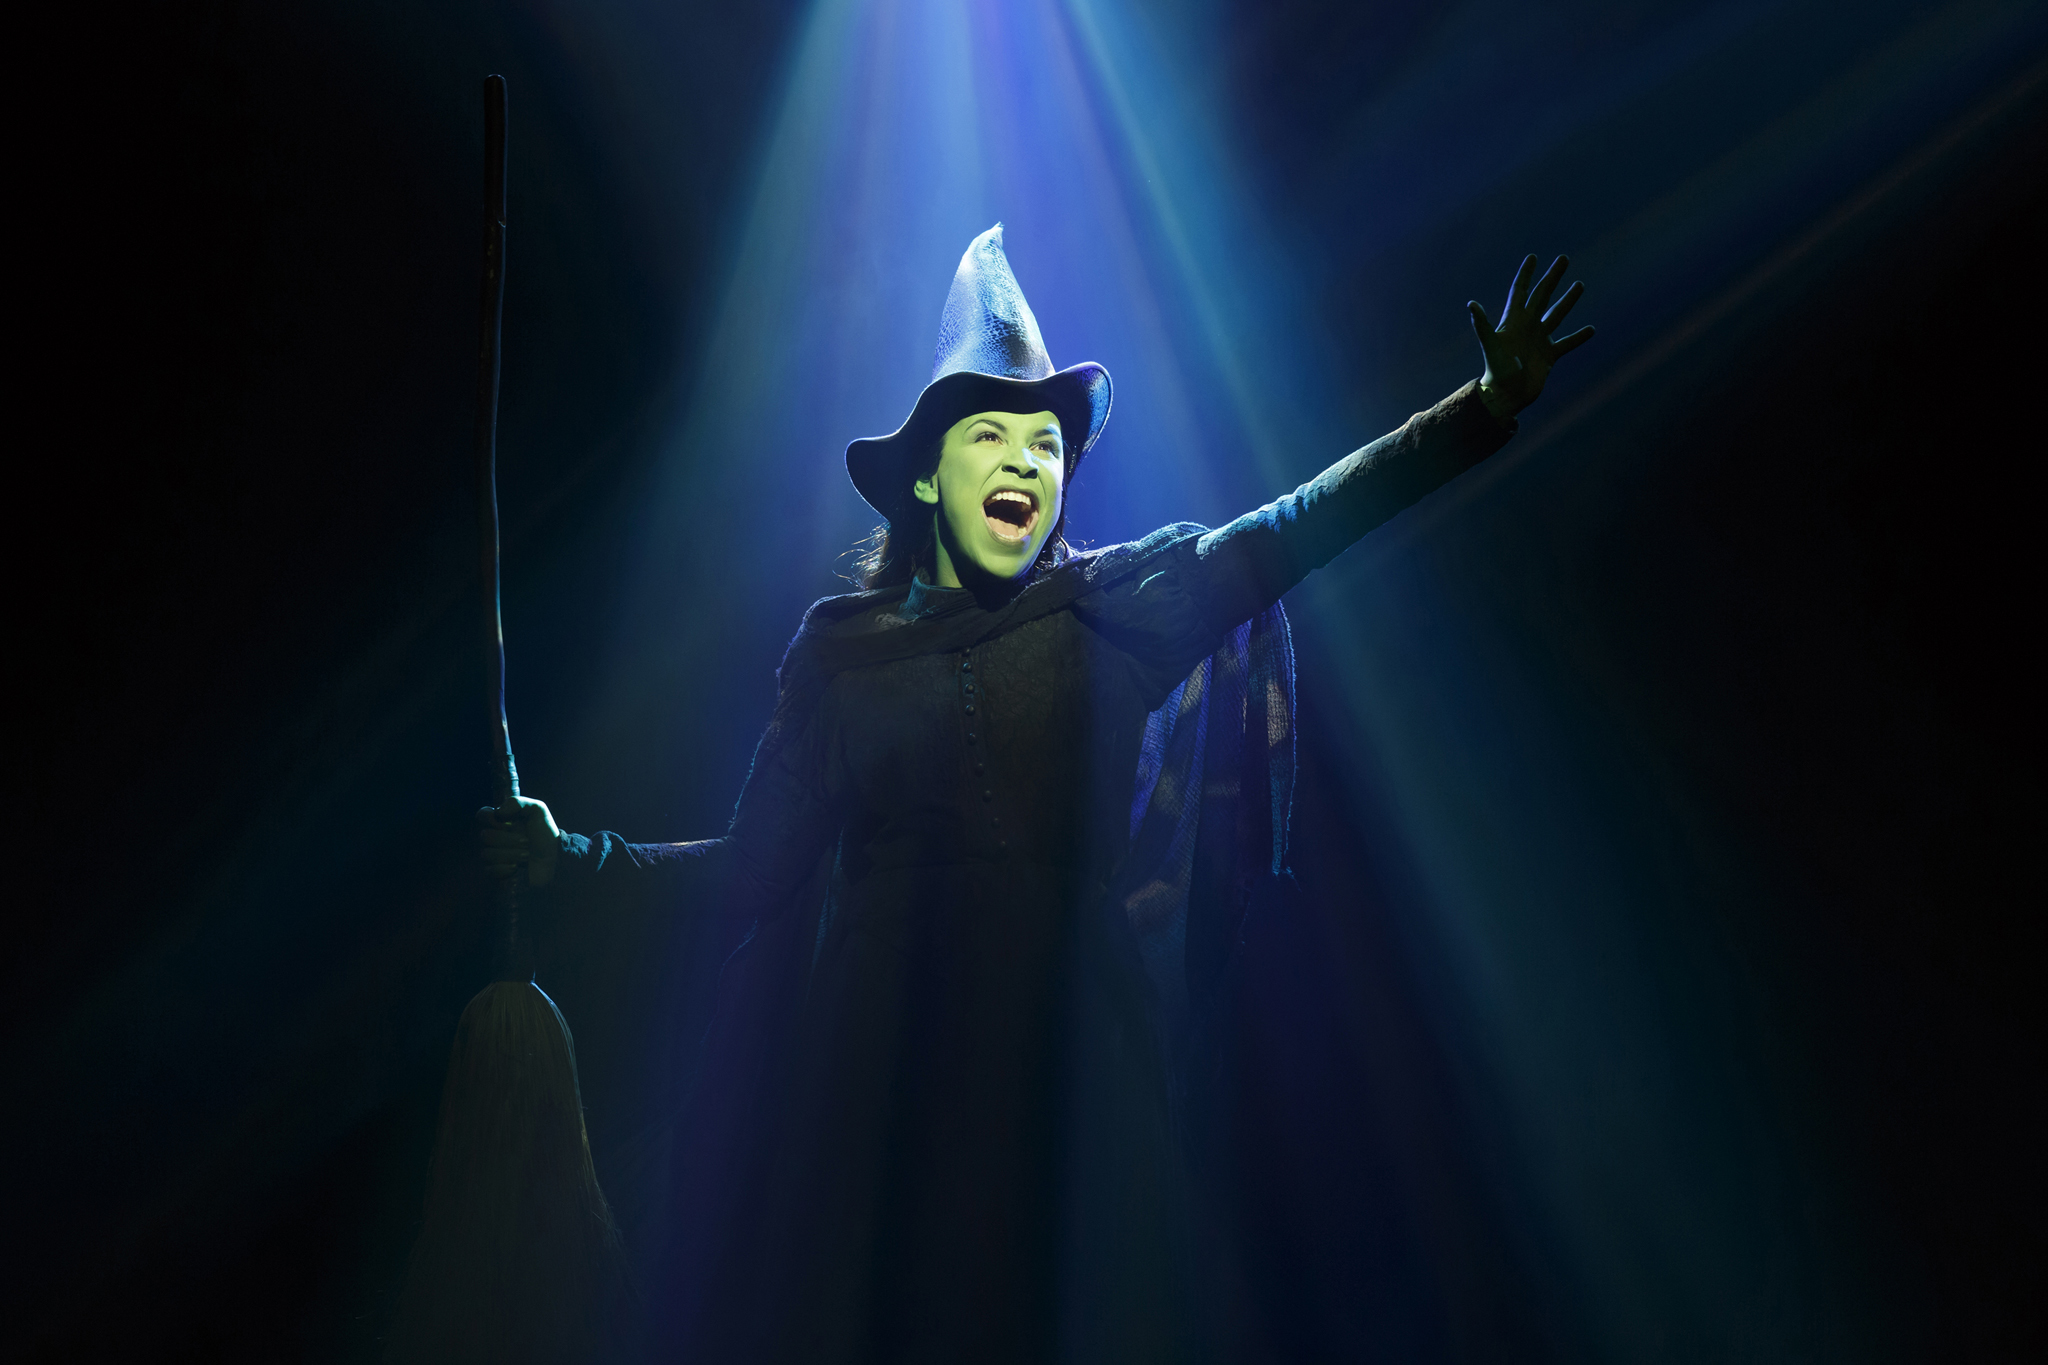 Wicked - Buy Now